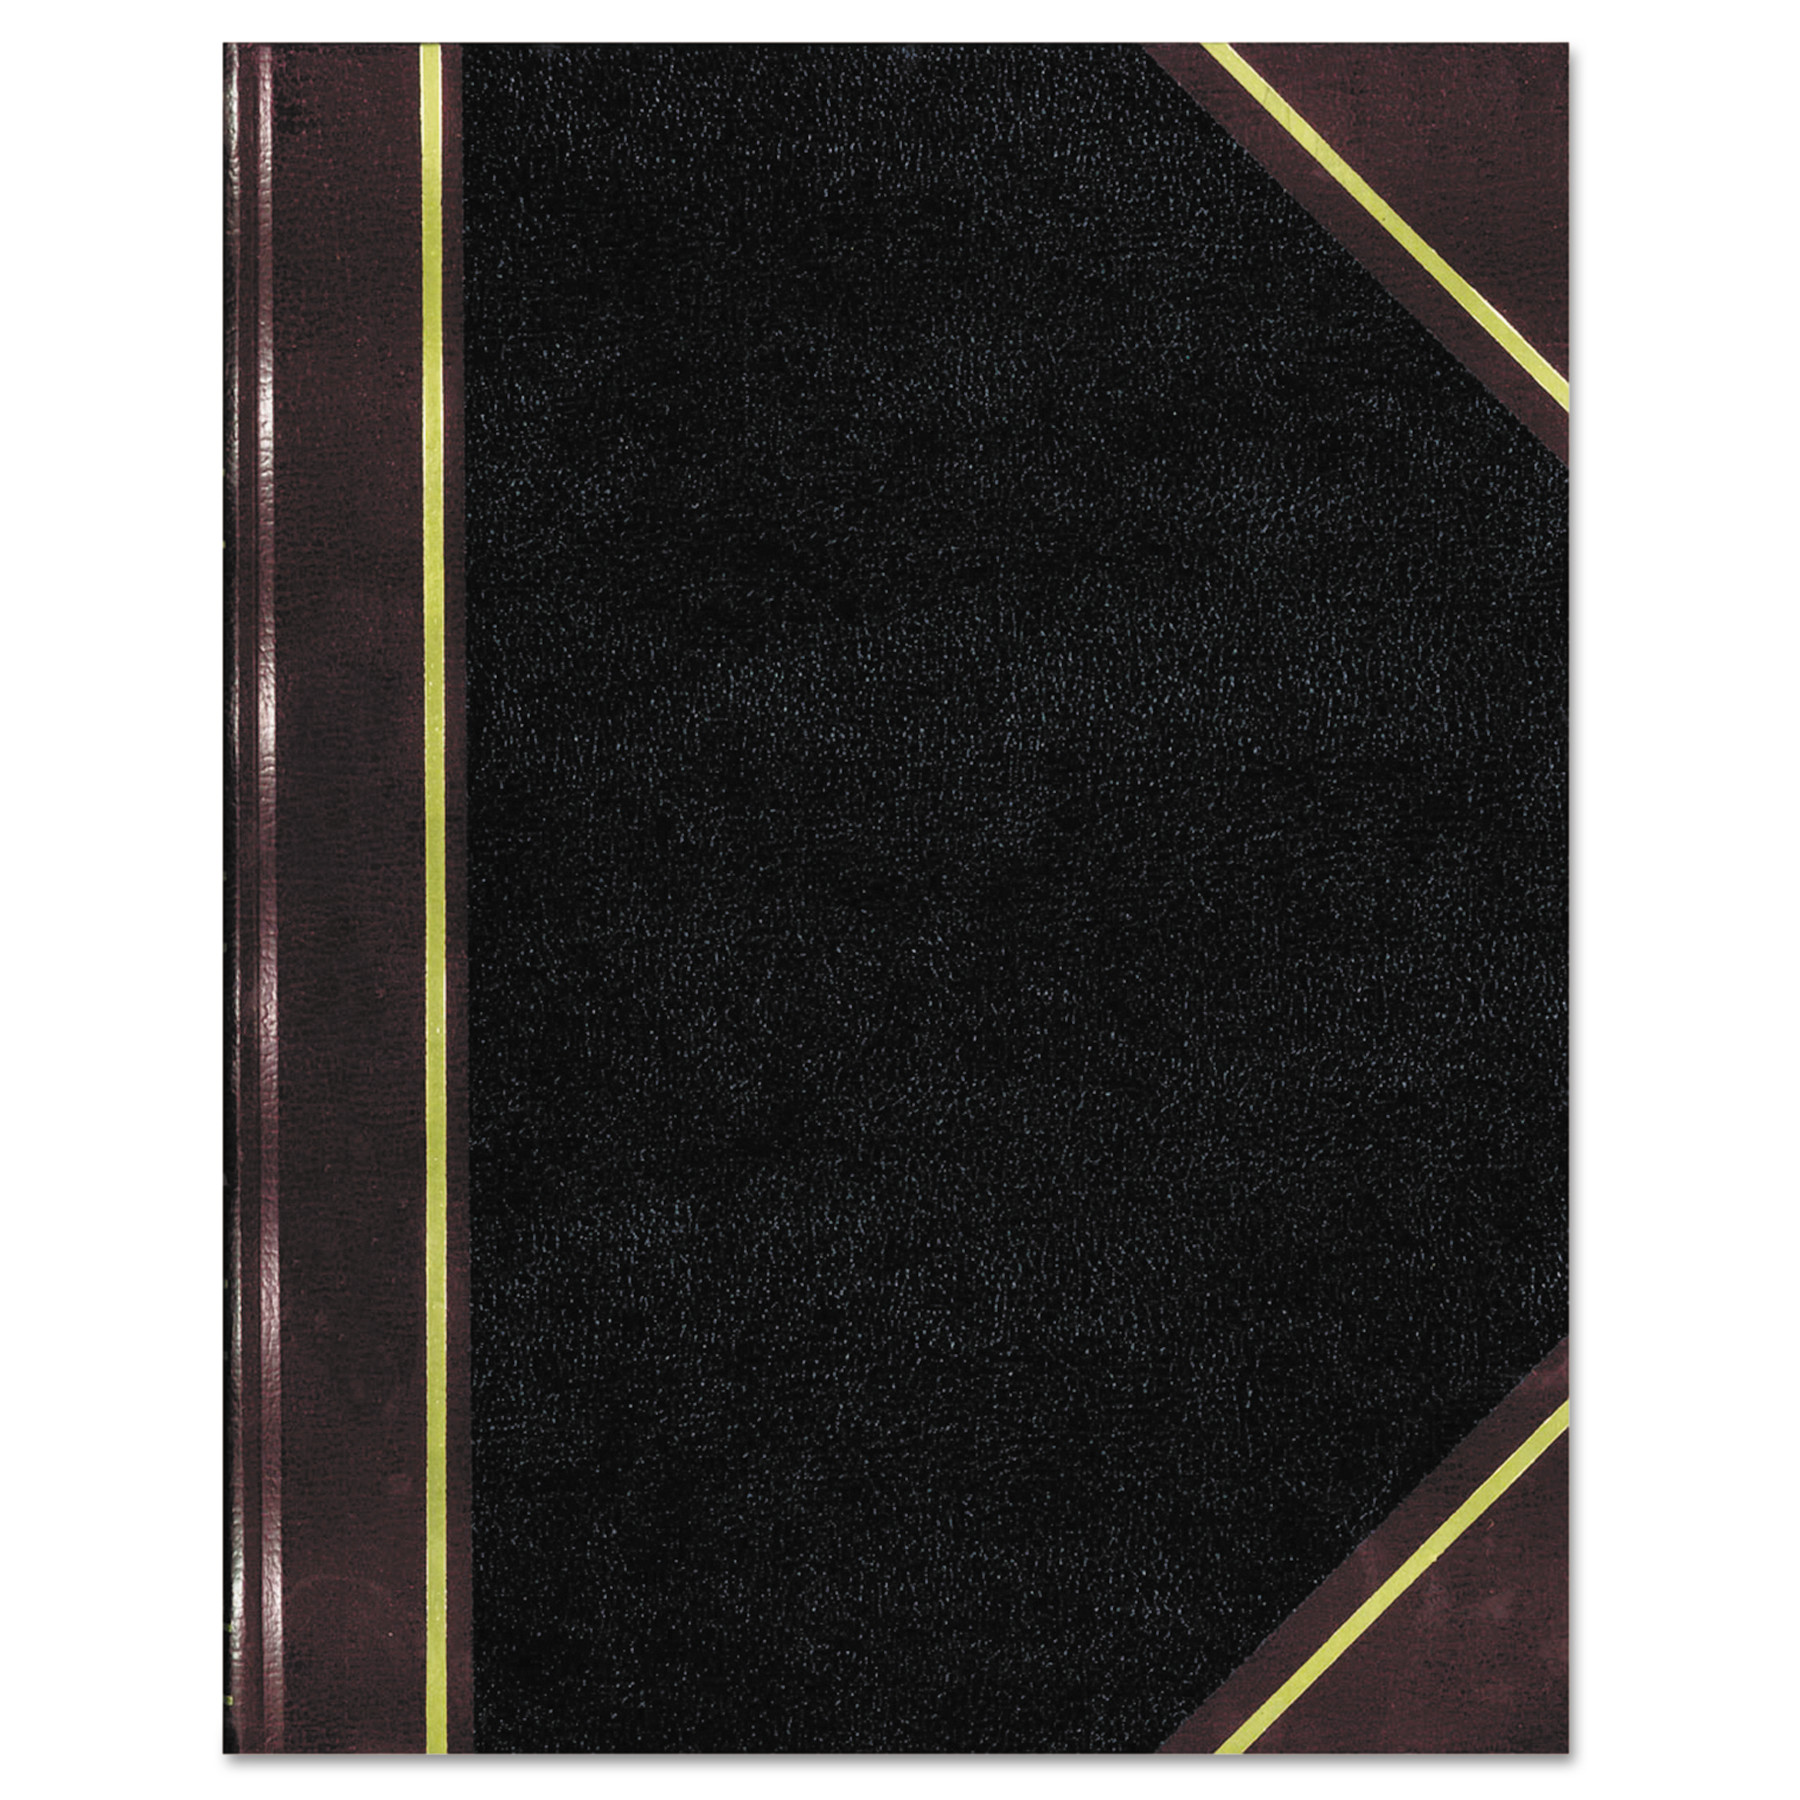 National Texthide Notebook, Black/Burgundy, 500 Pages, 14 1/4 x 8 3/4 -RED57151